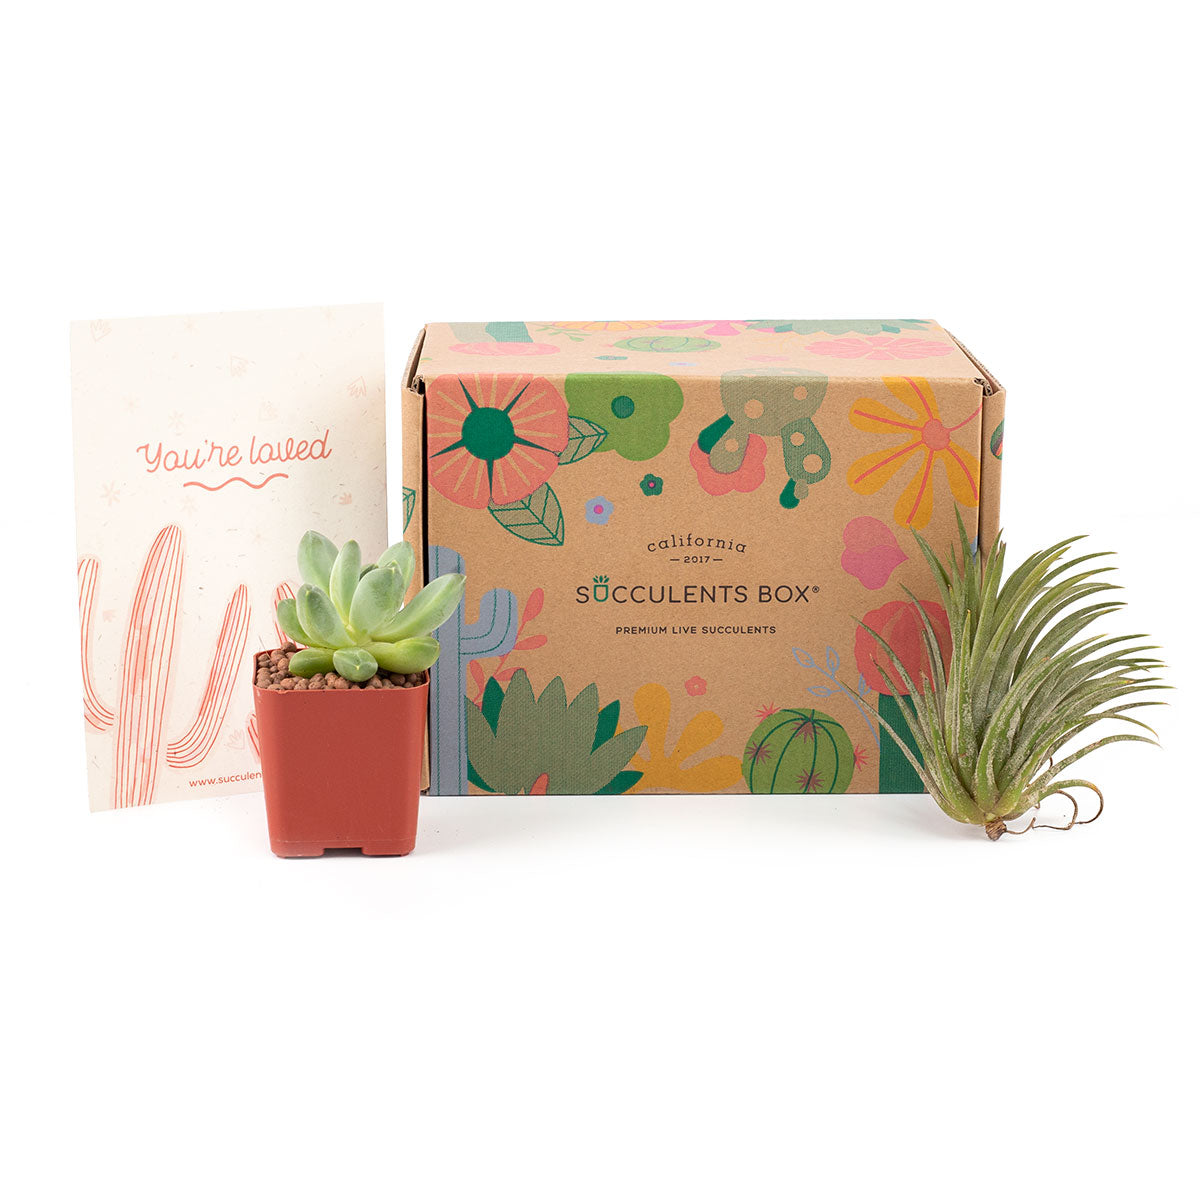 Succulent subscription box delivered monthly, Succulent subscription gift for sale, airplants subscription box monthly